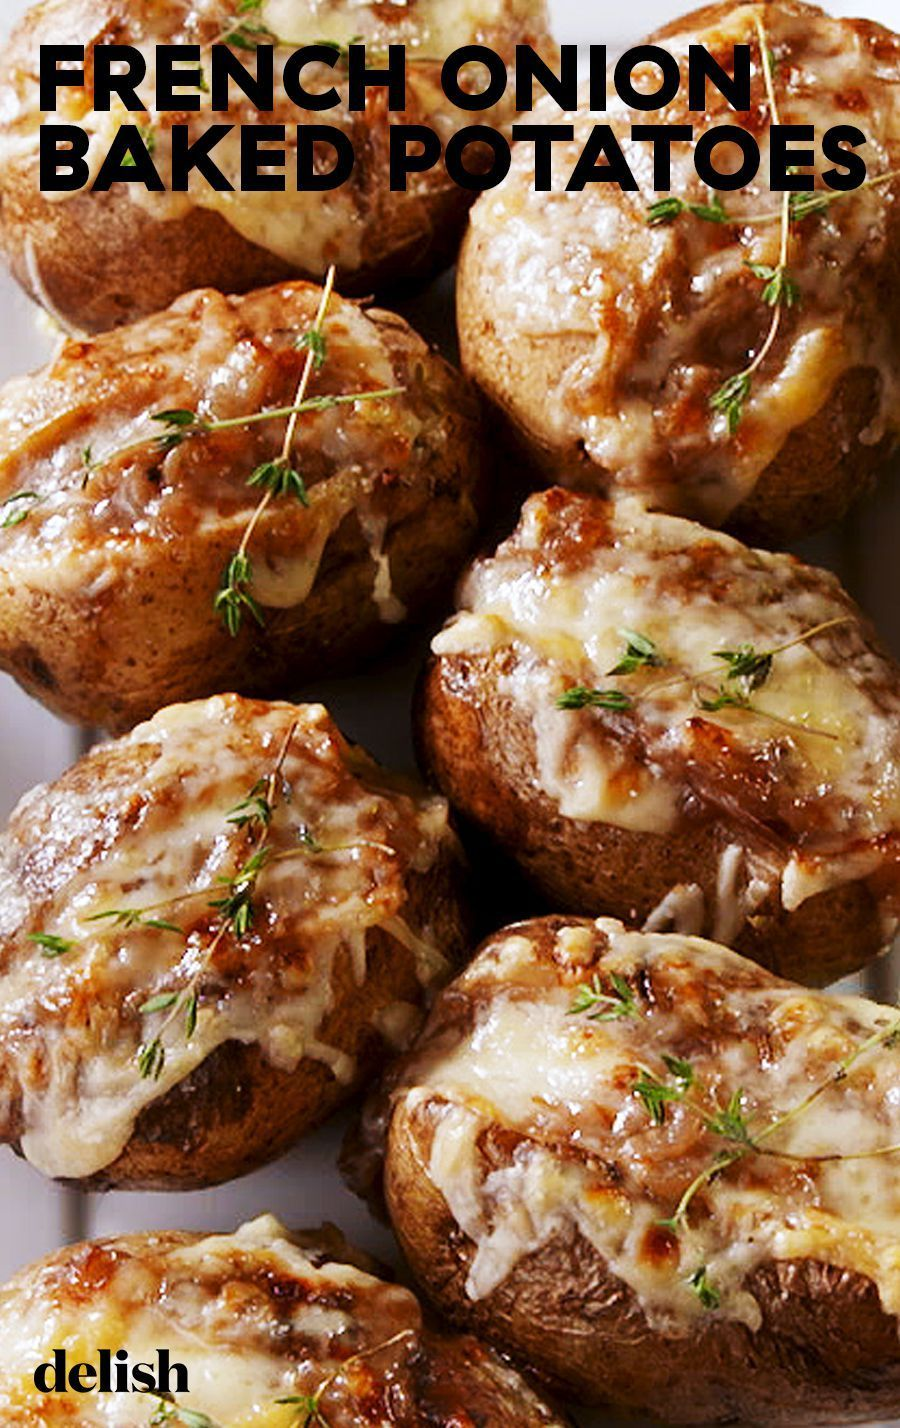 Onion Baked Potatoes We're DYING Over These French Onion Baked PotatoesDelishWe're DYING Over These French Onion Baked PotatoesDelish